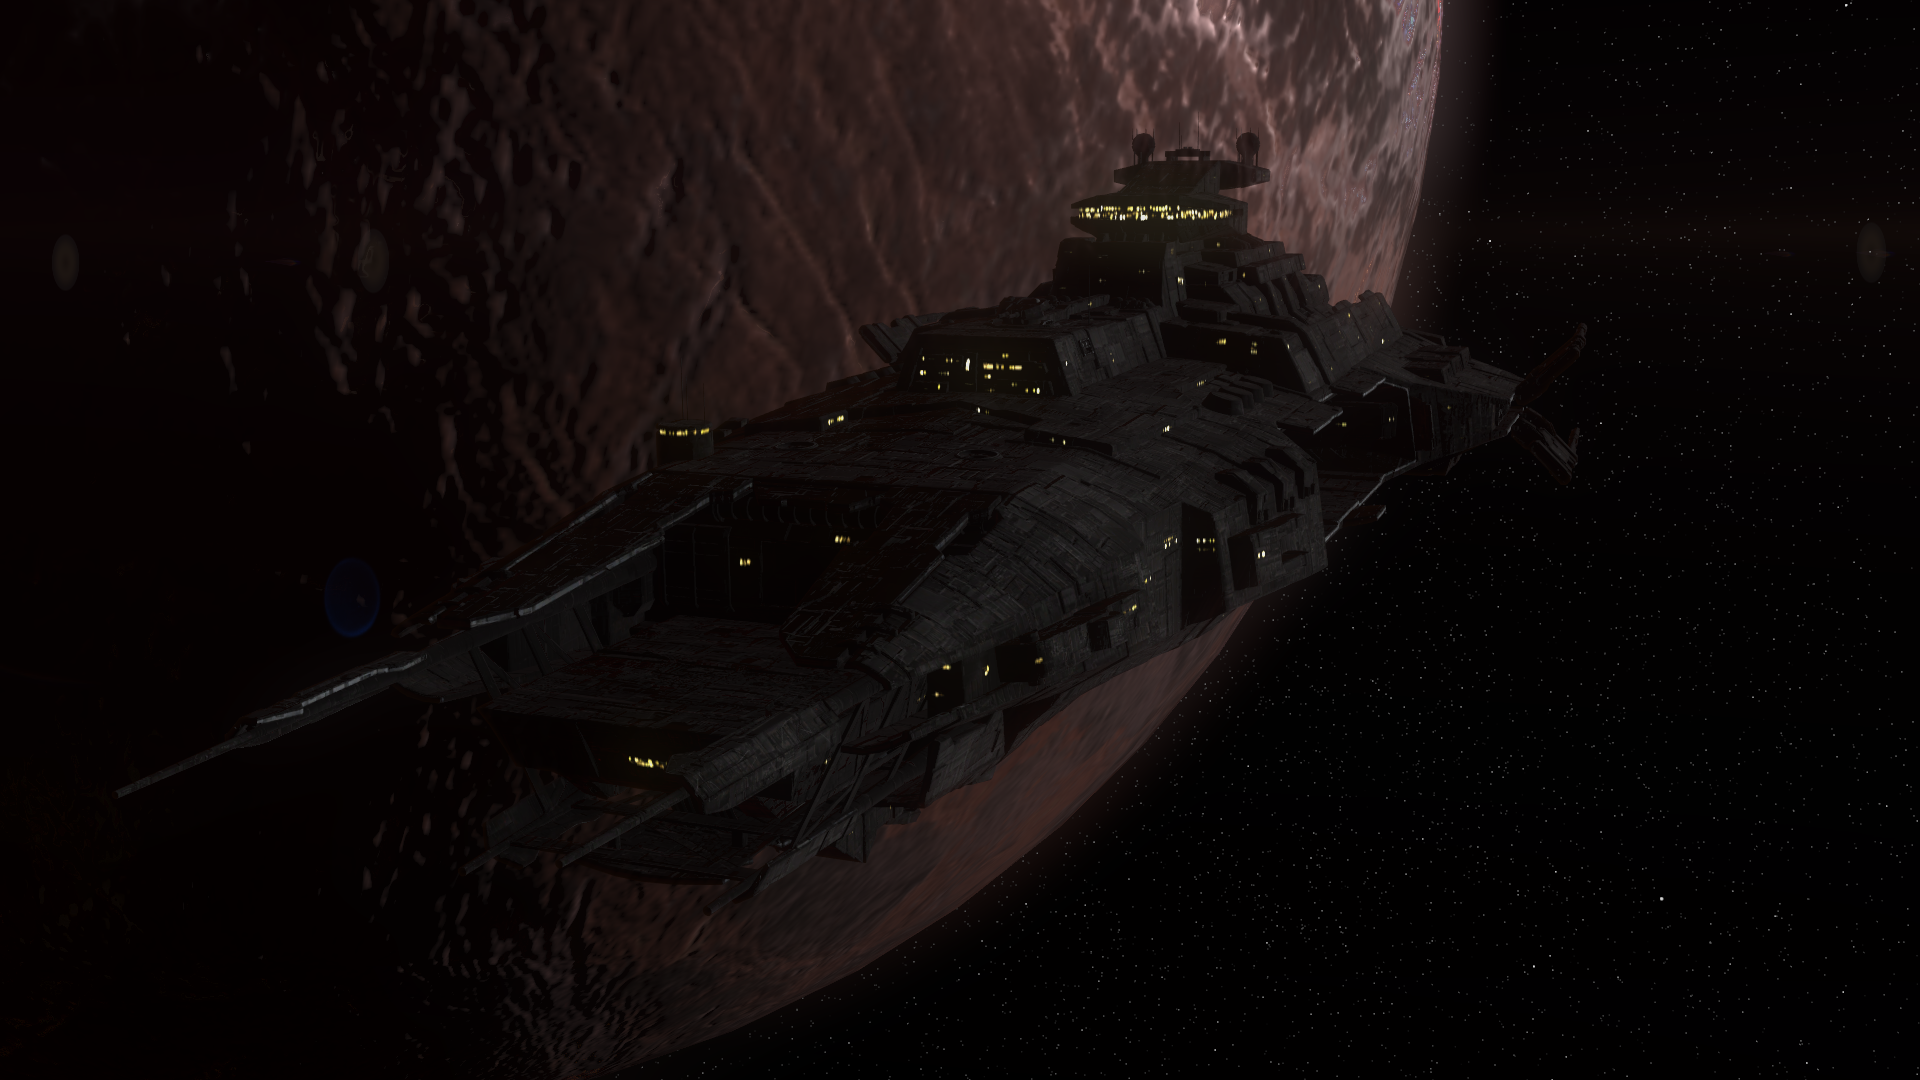 Space_ship-00;00;00;24.png